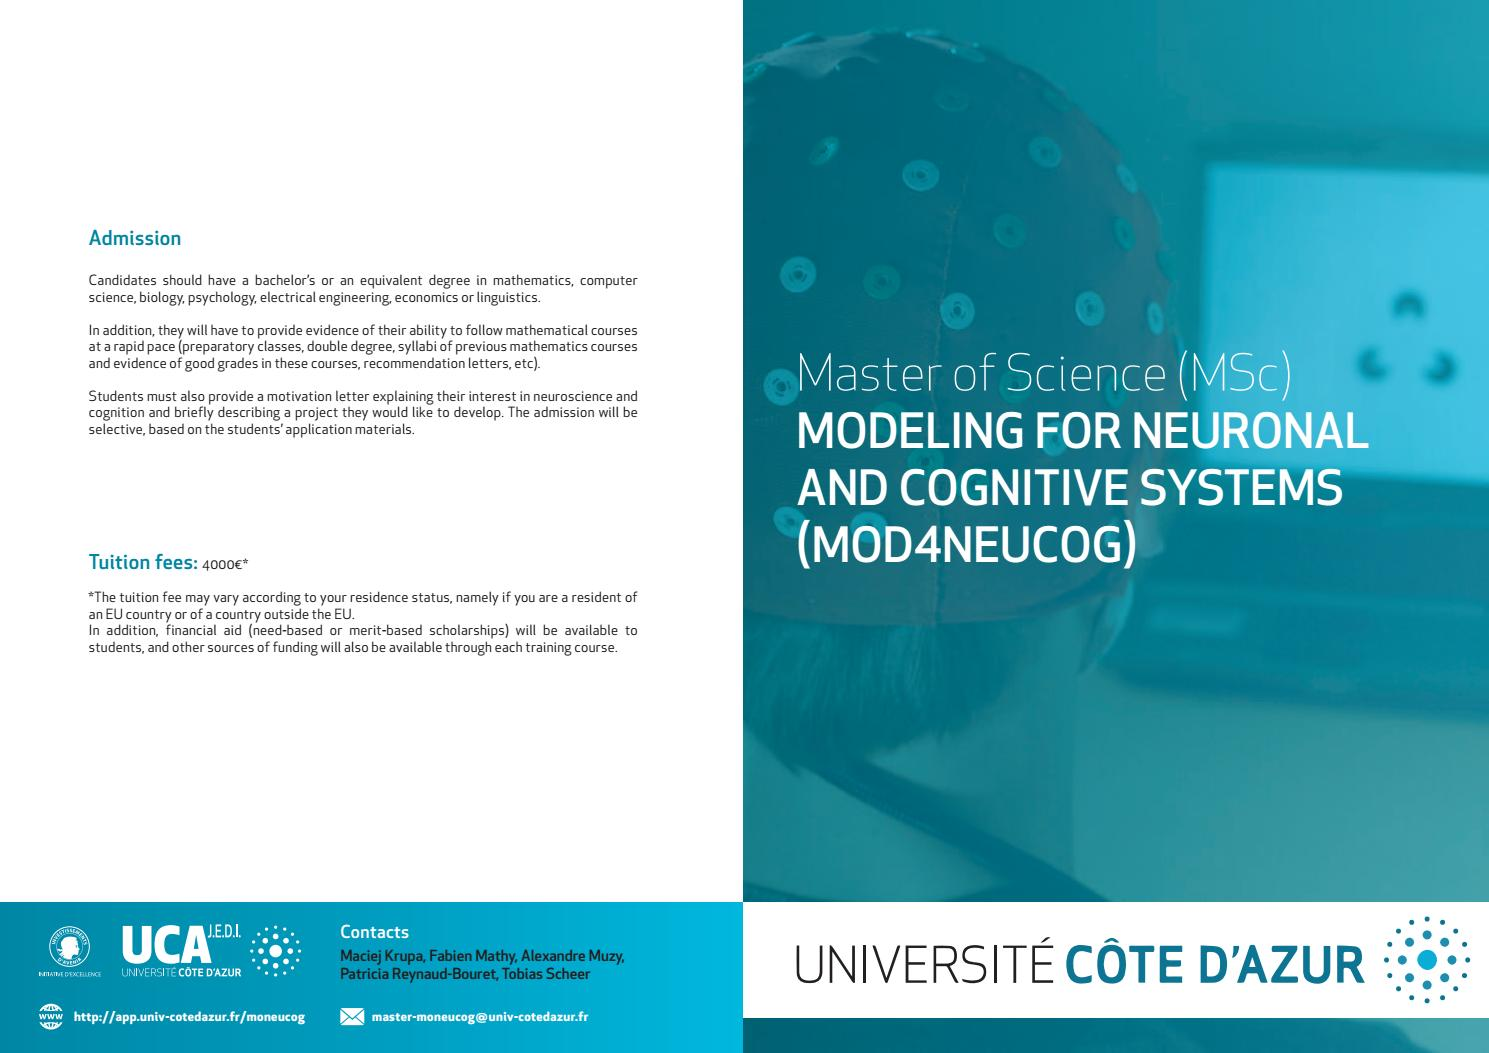 MSc MOD4NEUCOG - Modeling for neuronal and congnitive systems by